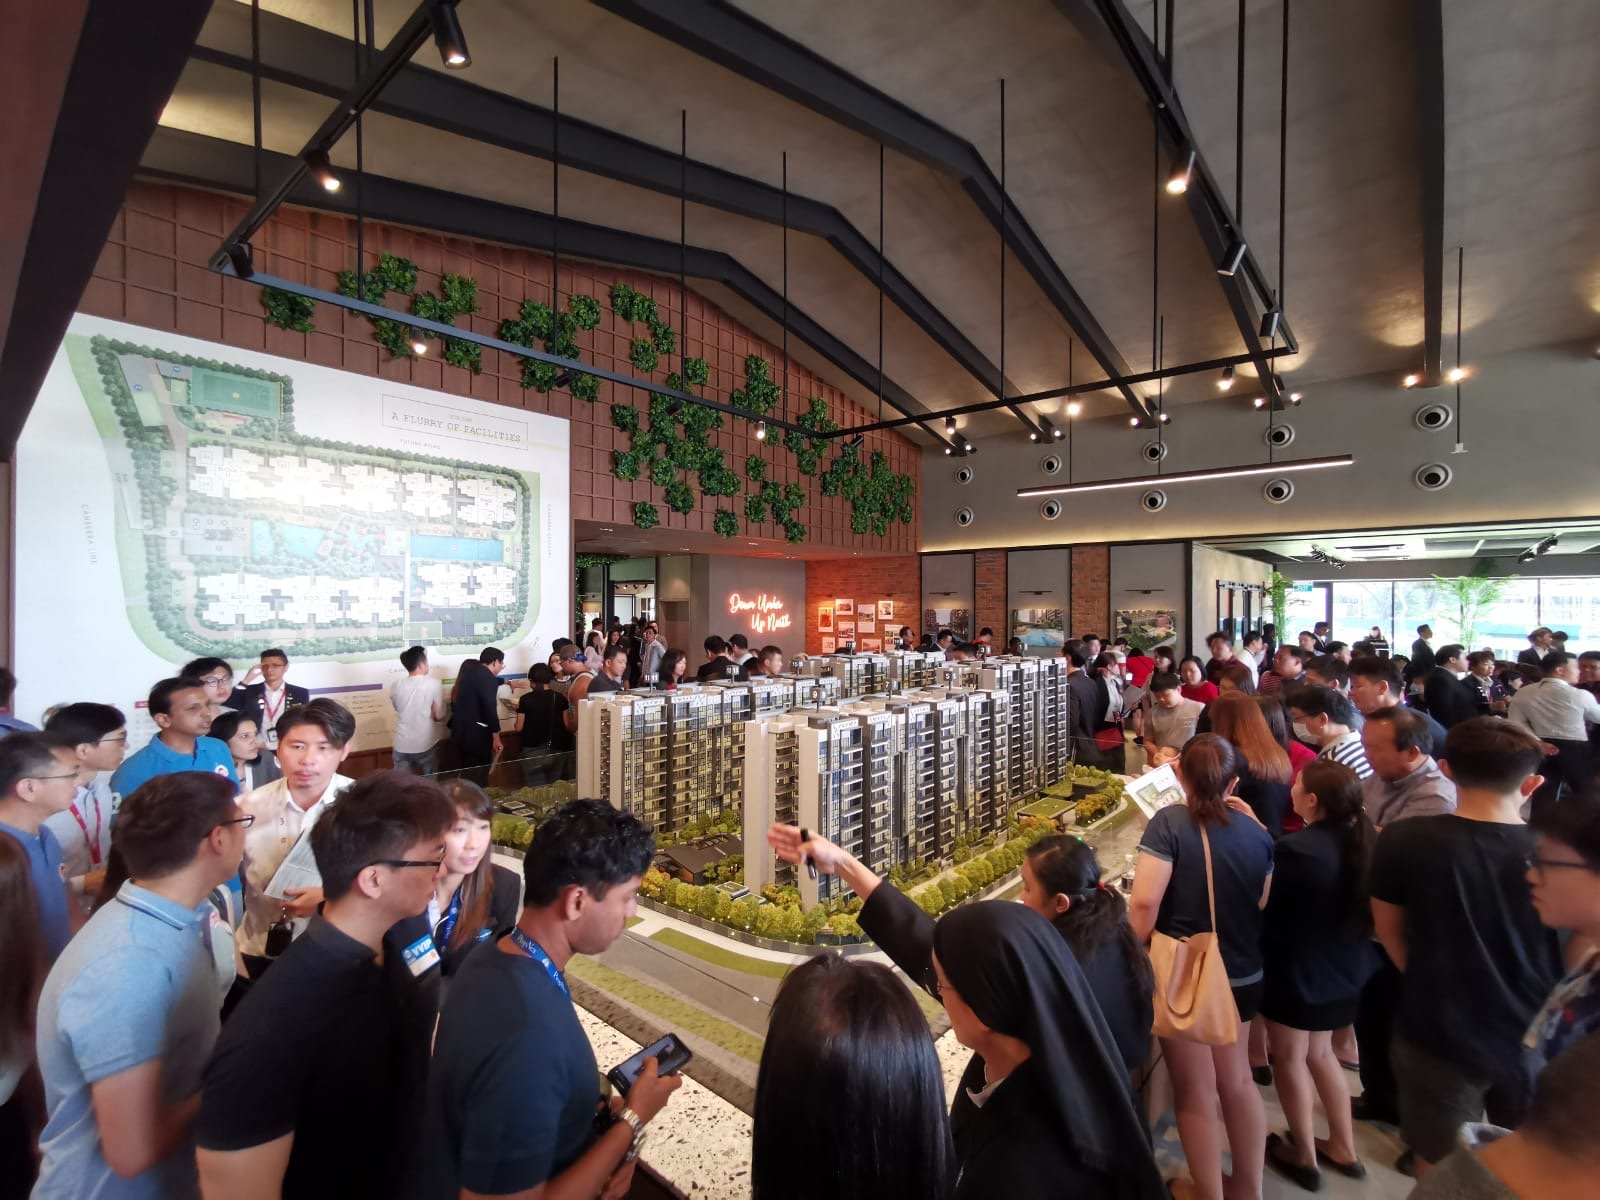 Crowd at Parc Canberra on the preview weekend (Photo: Albert Chua/EdgeProp Singapore)